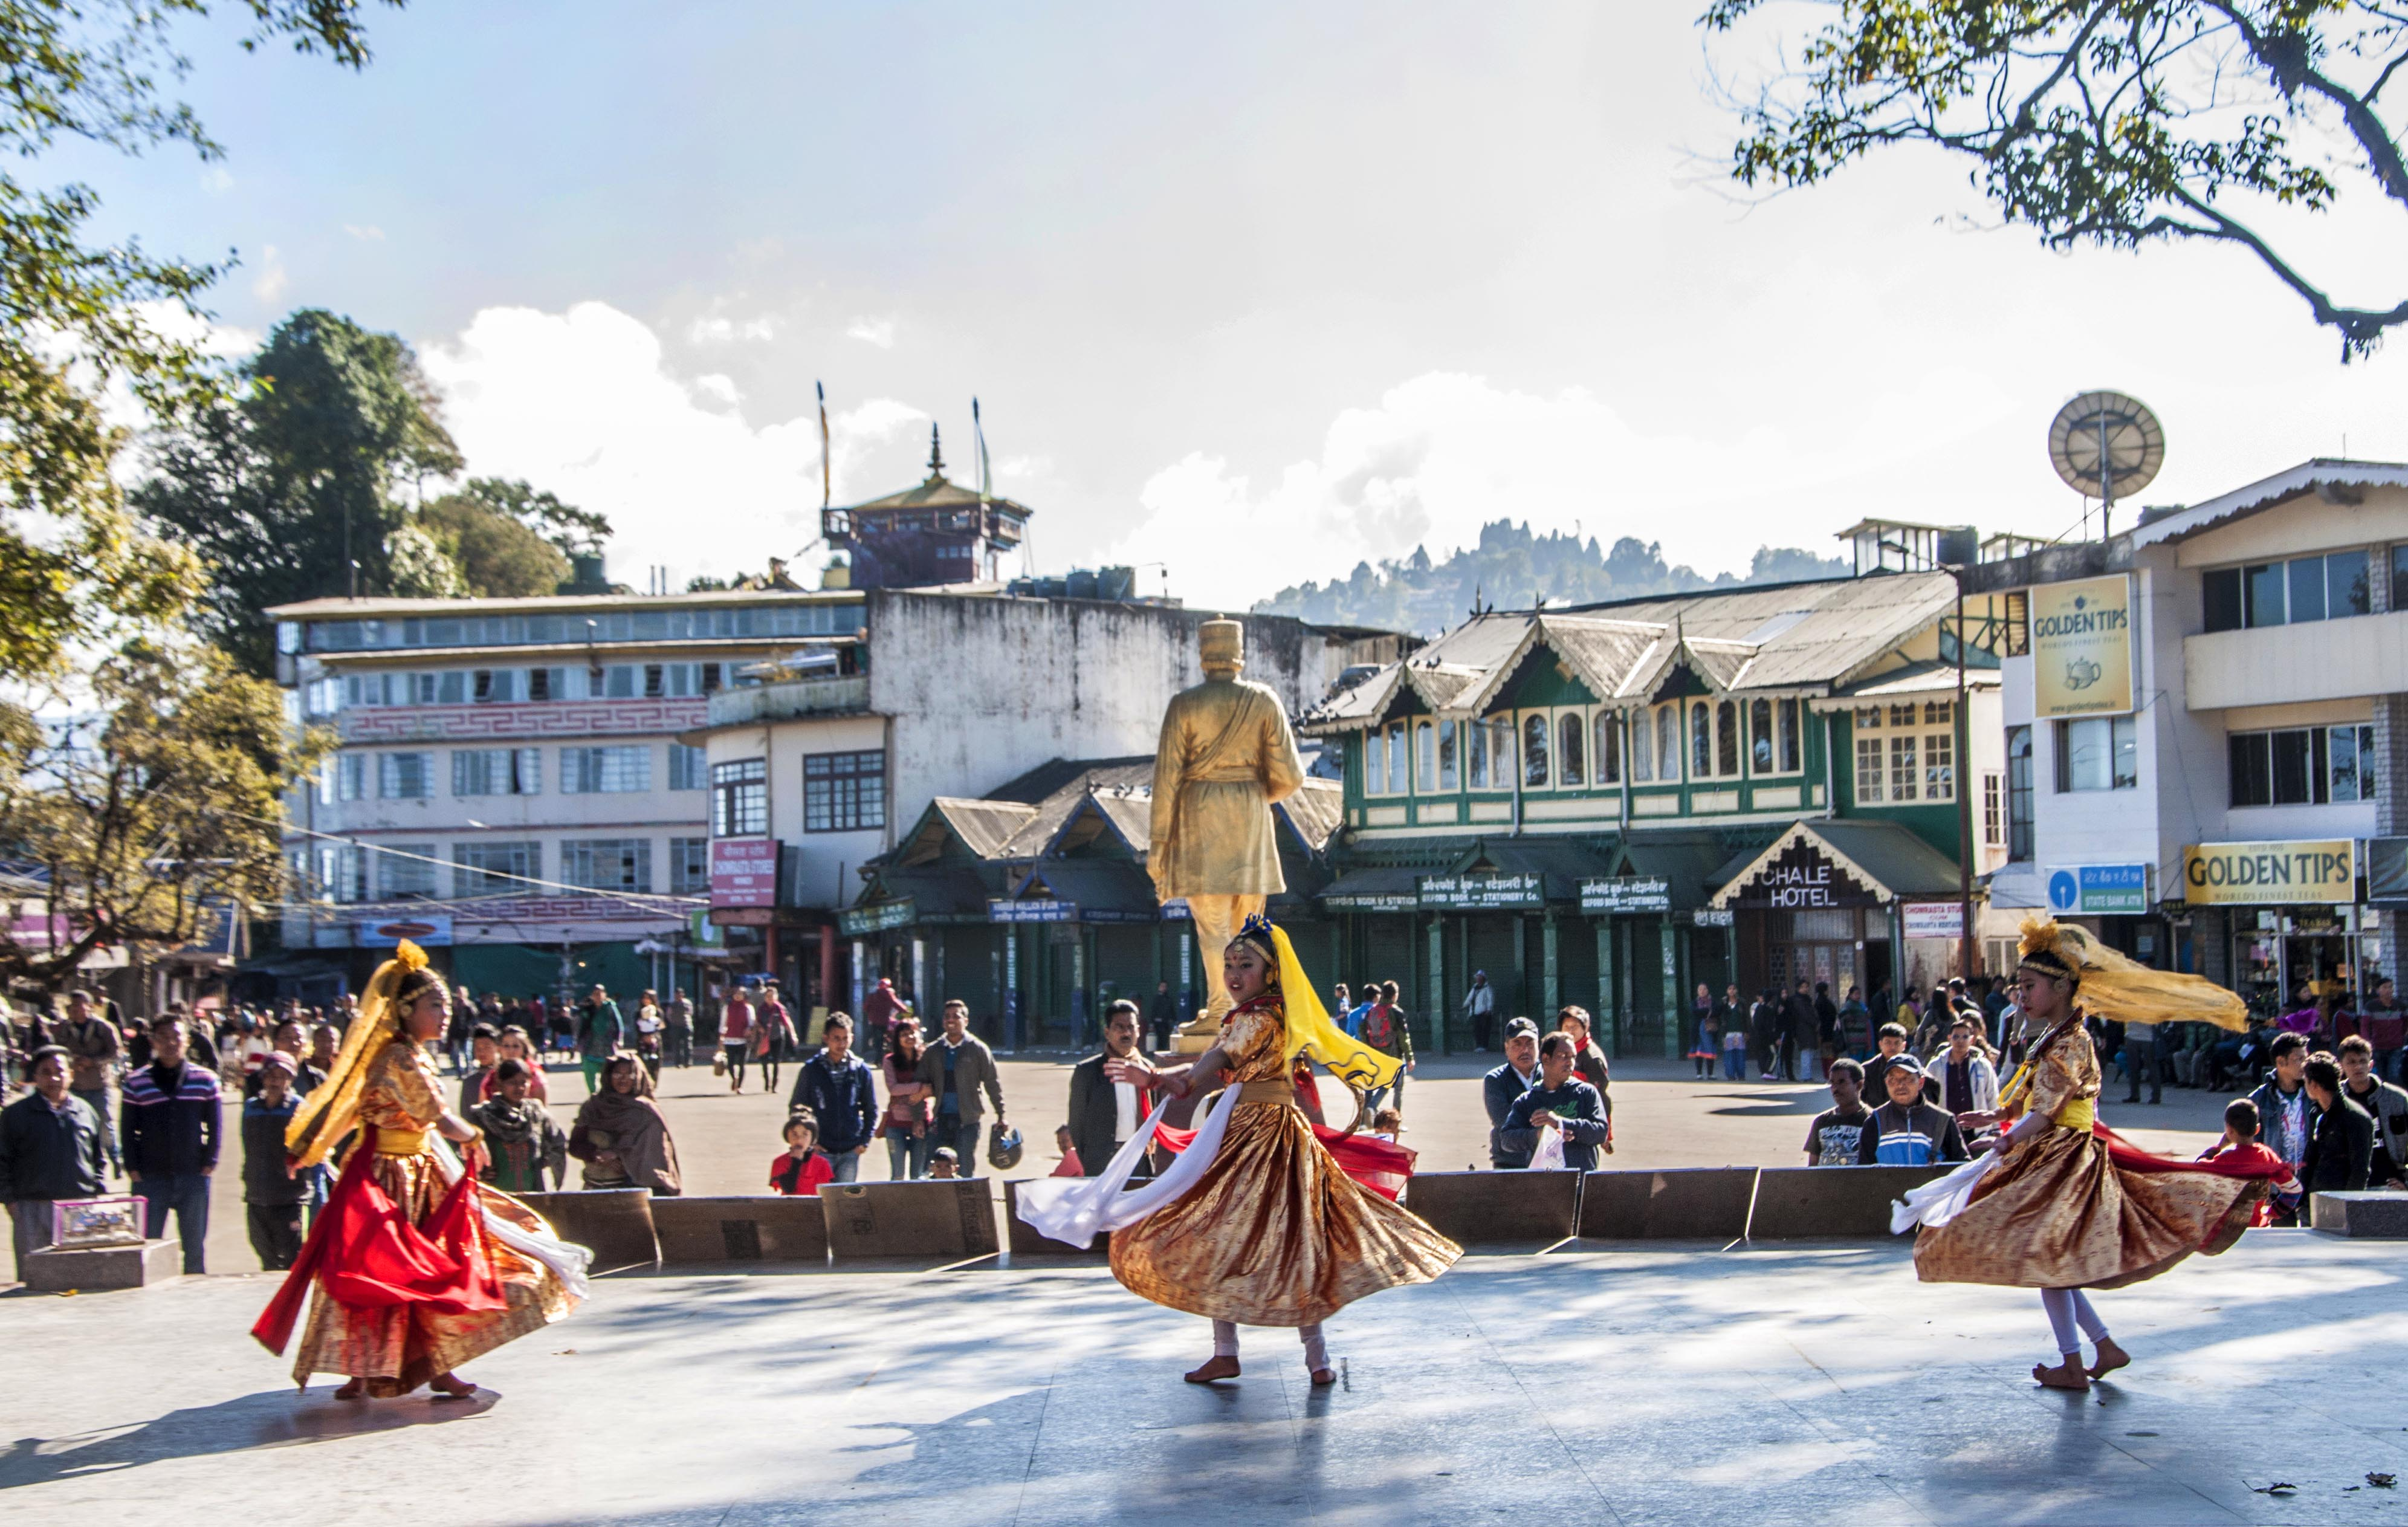 Folk dance performance at Mall, Darjeeling